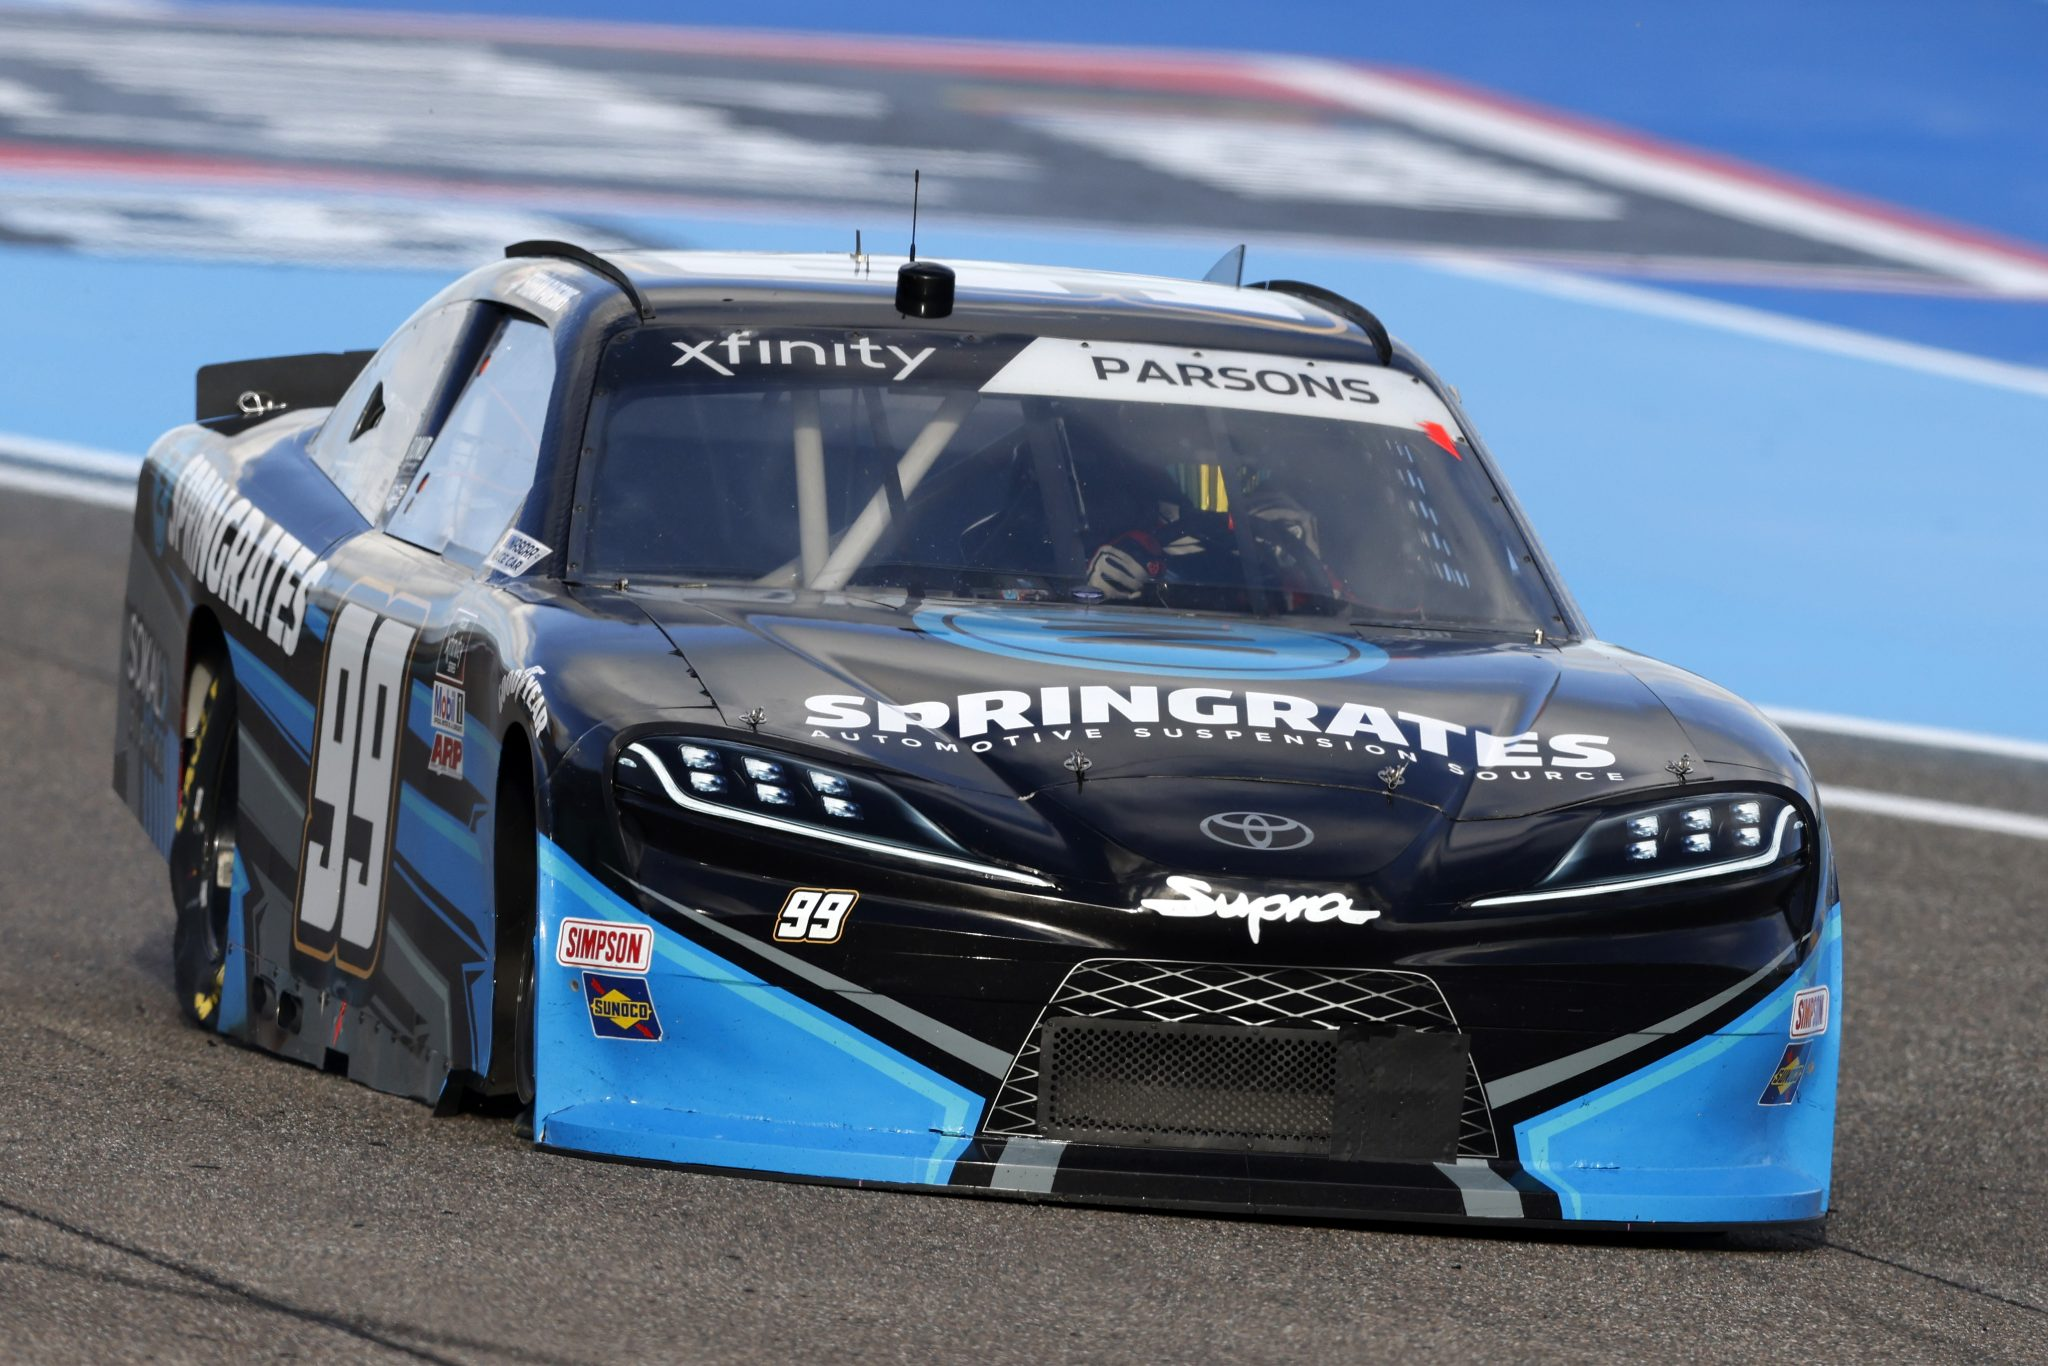 HOMESTEAD, FLORIDA - FEBRUARY 27: Stefan Parsons, driver of the #99 Springrates Chevrolet, drives during the NASCAR Xfinity Series Contender Boats 250 at Homestead-Miami Speedway on February 27, 2021 in Homestead, Florida. (Photo by Michael Reaves/Getty Images) | Getty Images